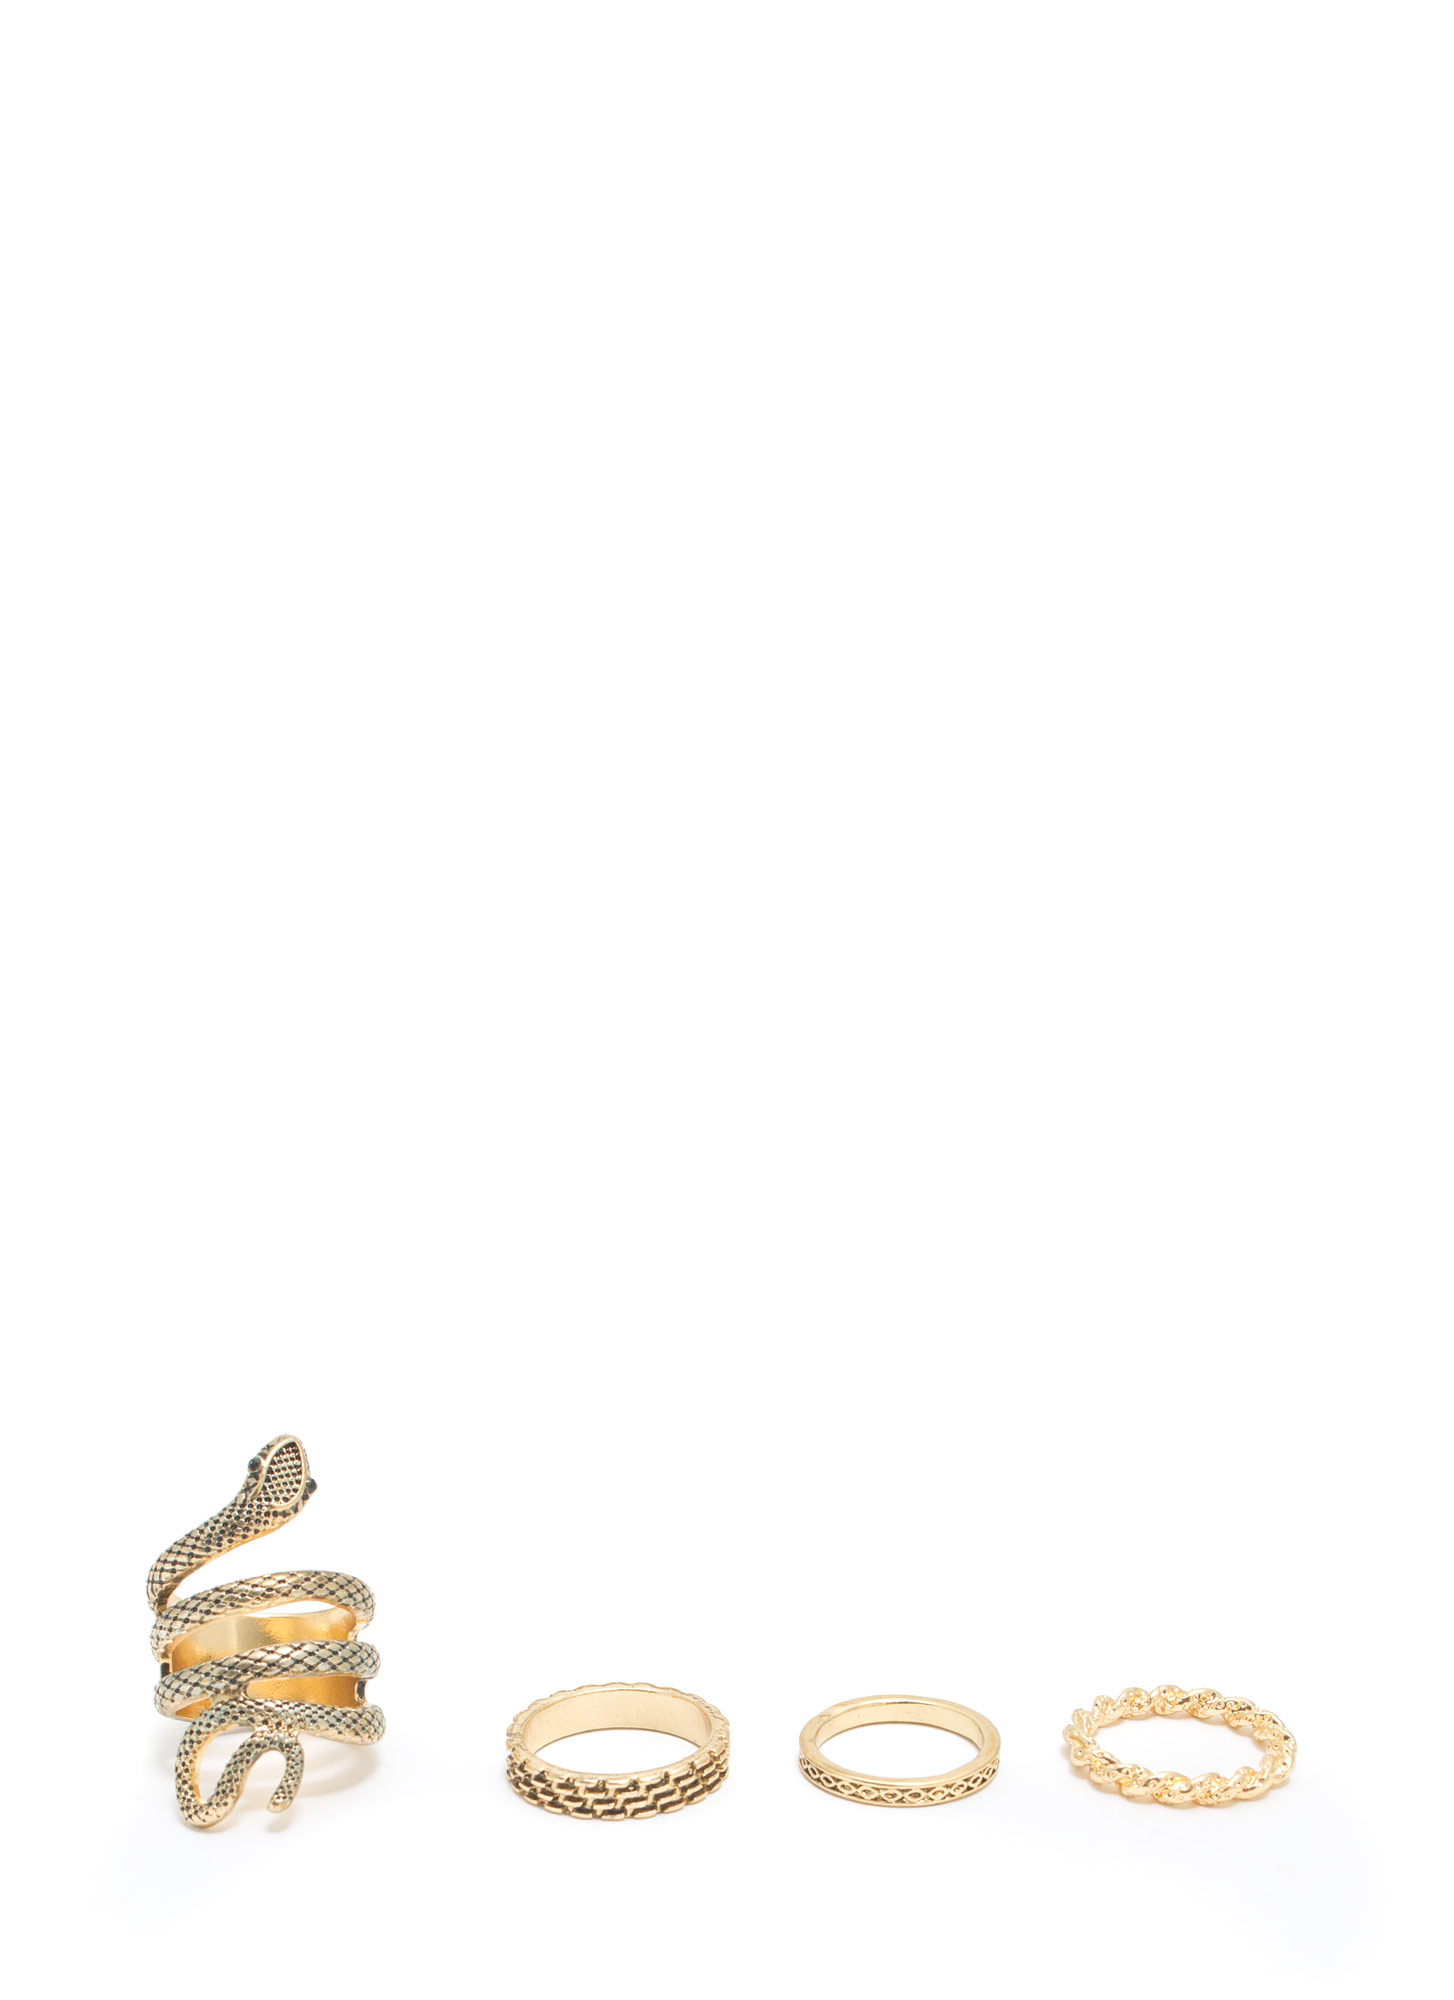 Come Slither Textured Ring Set DKGOLD